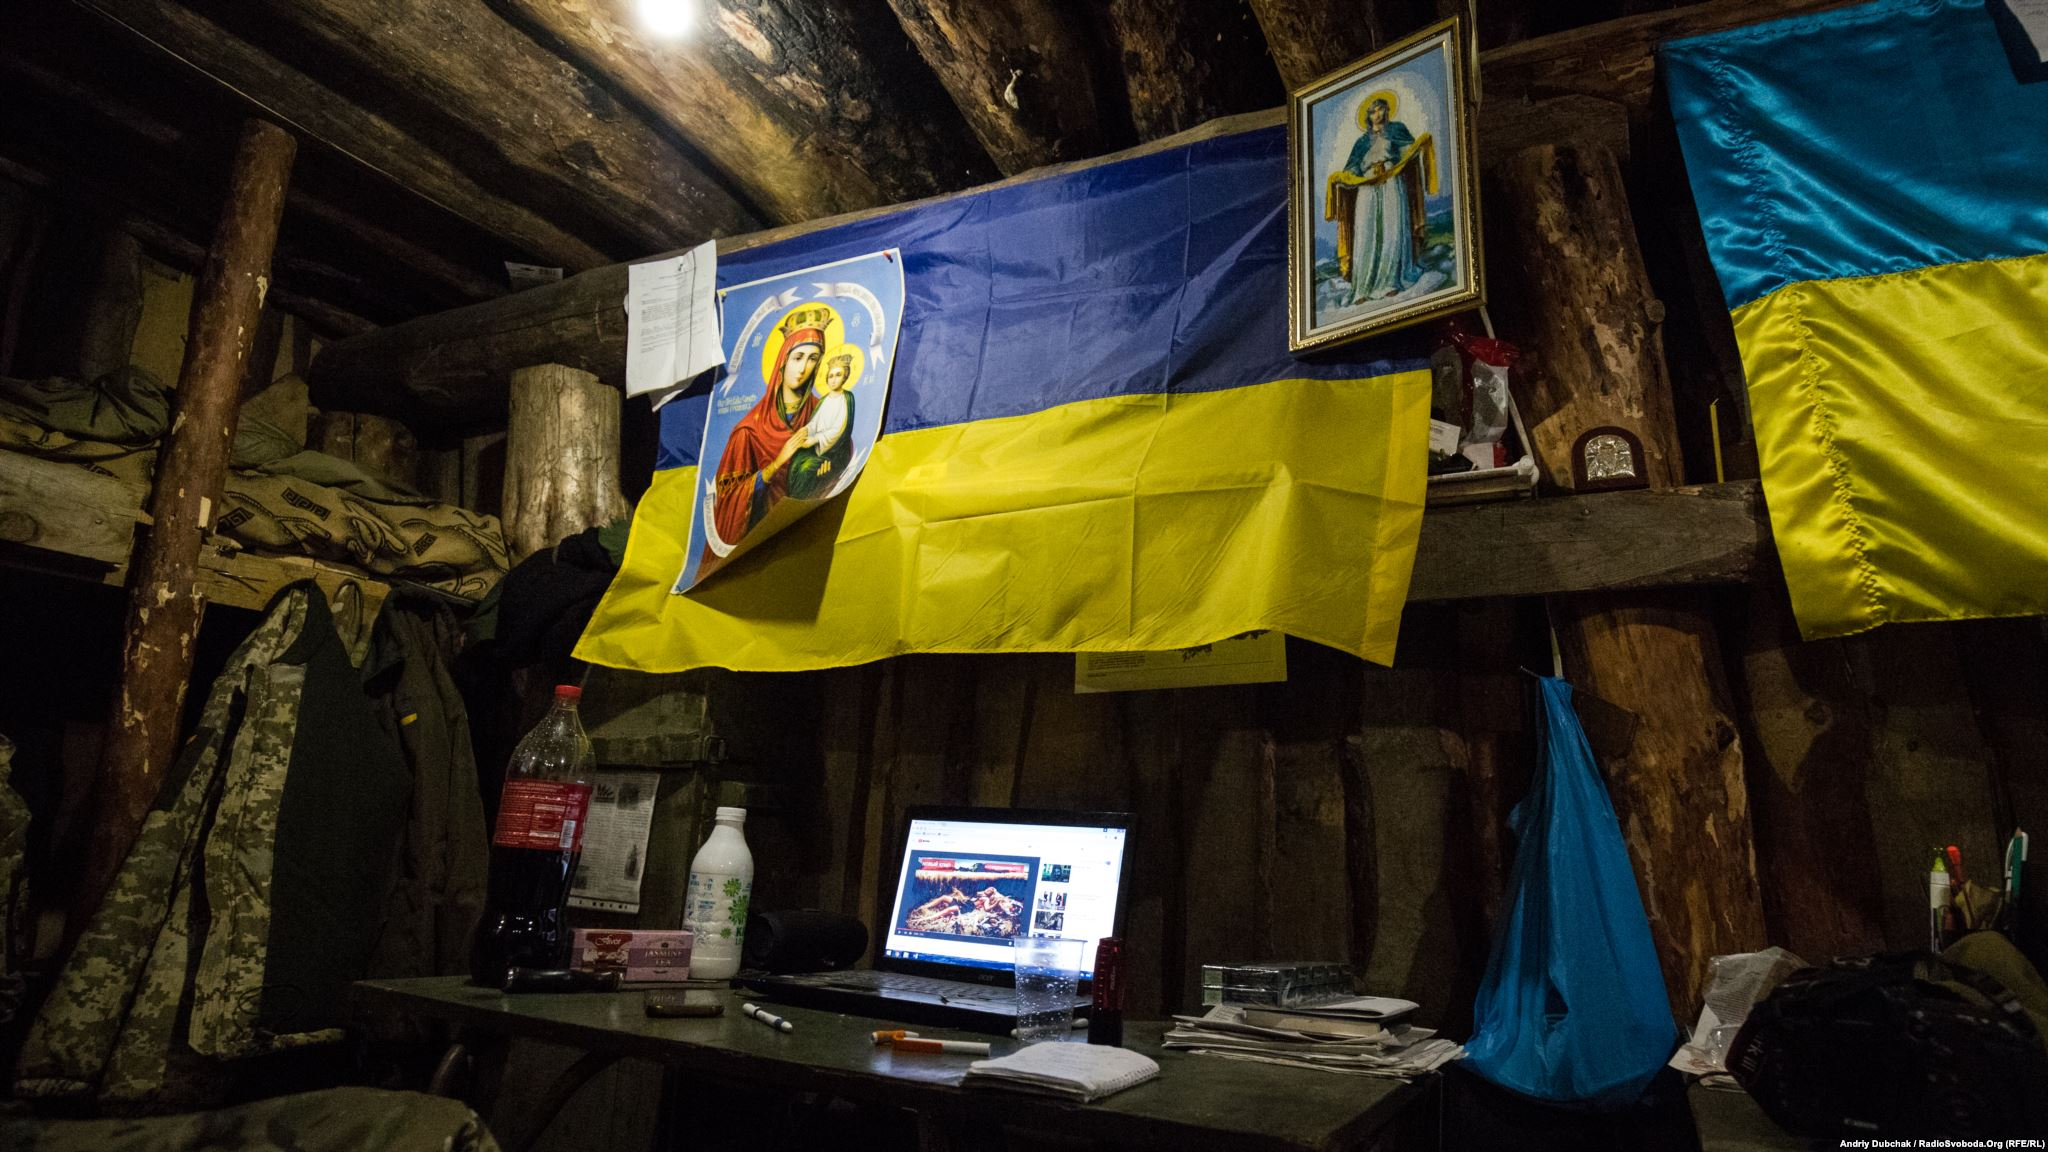 Icons and flags in a living dugout. (photo by ukrainian military photographer Andriy Dubchak)